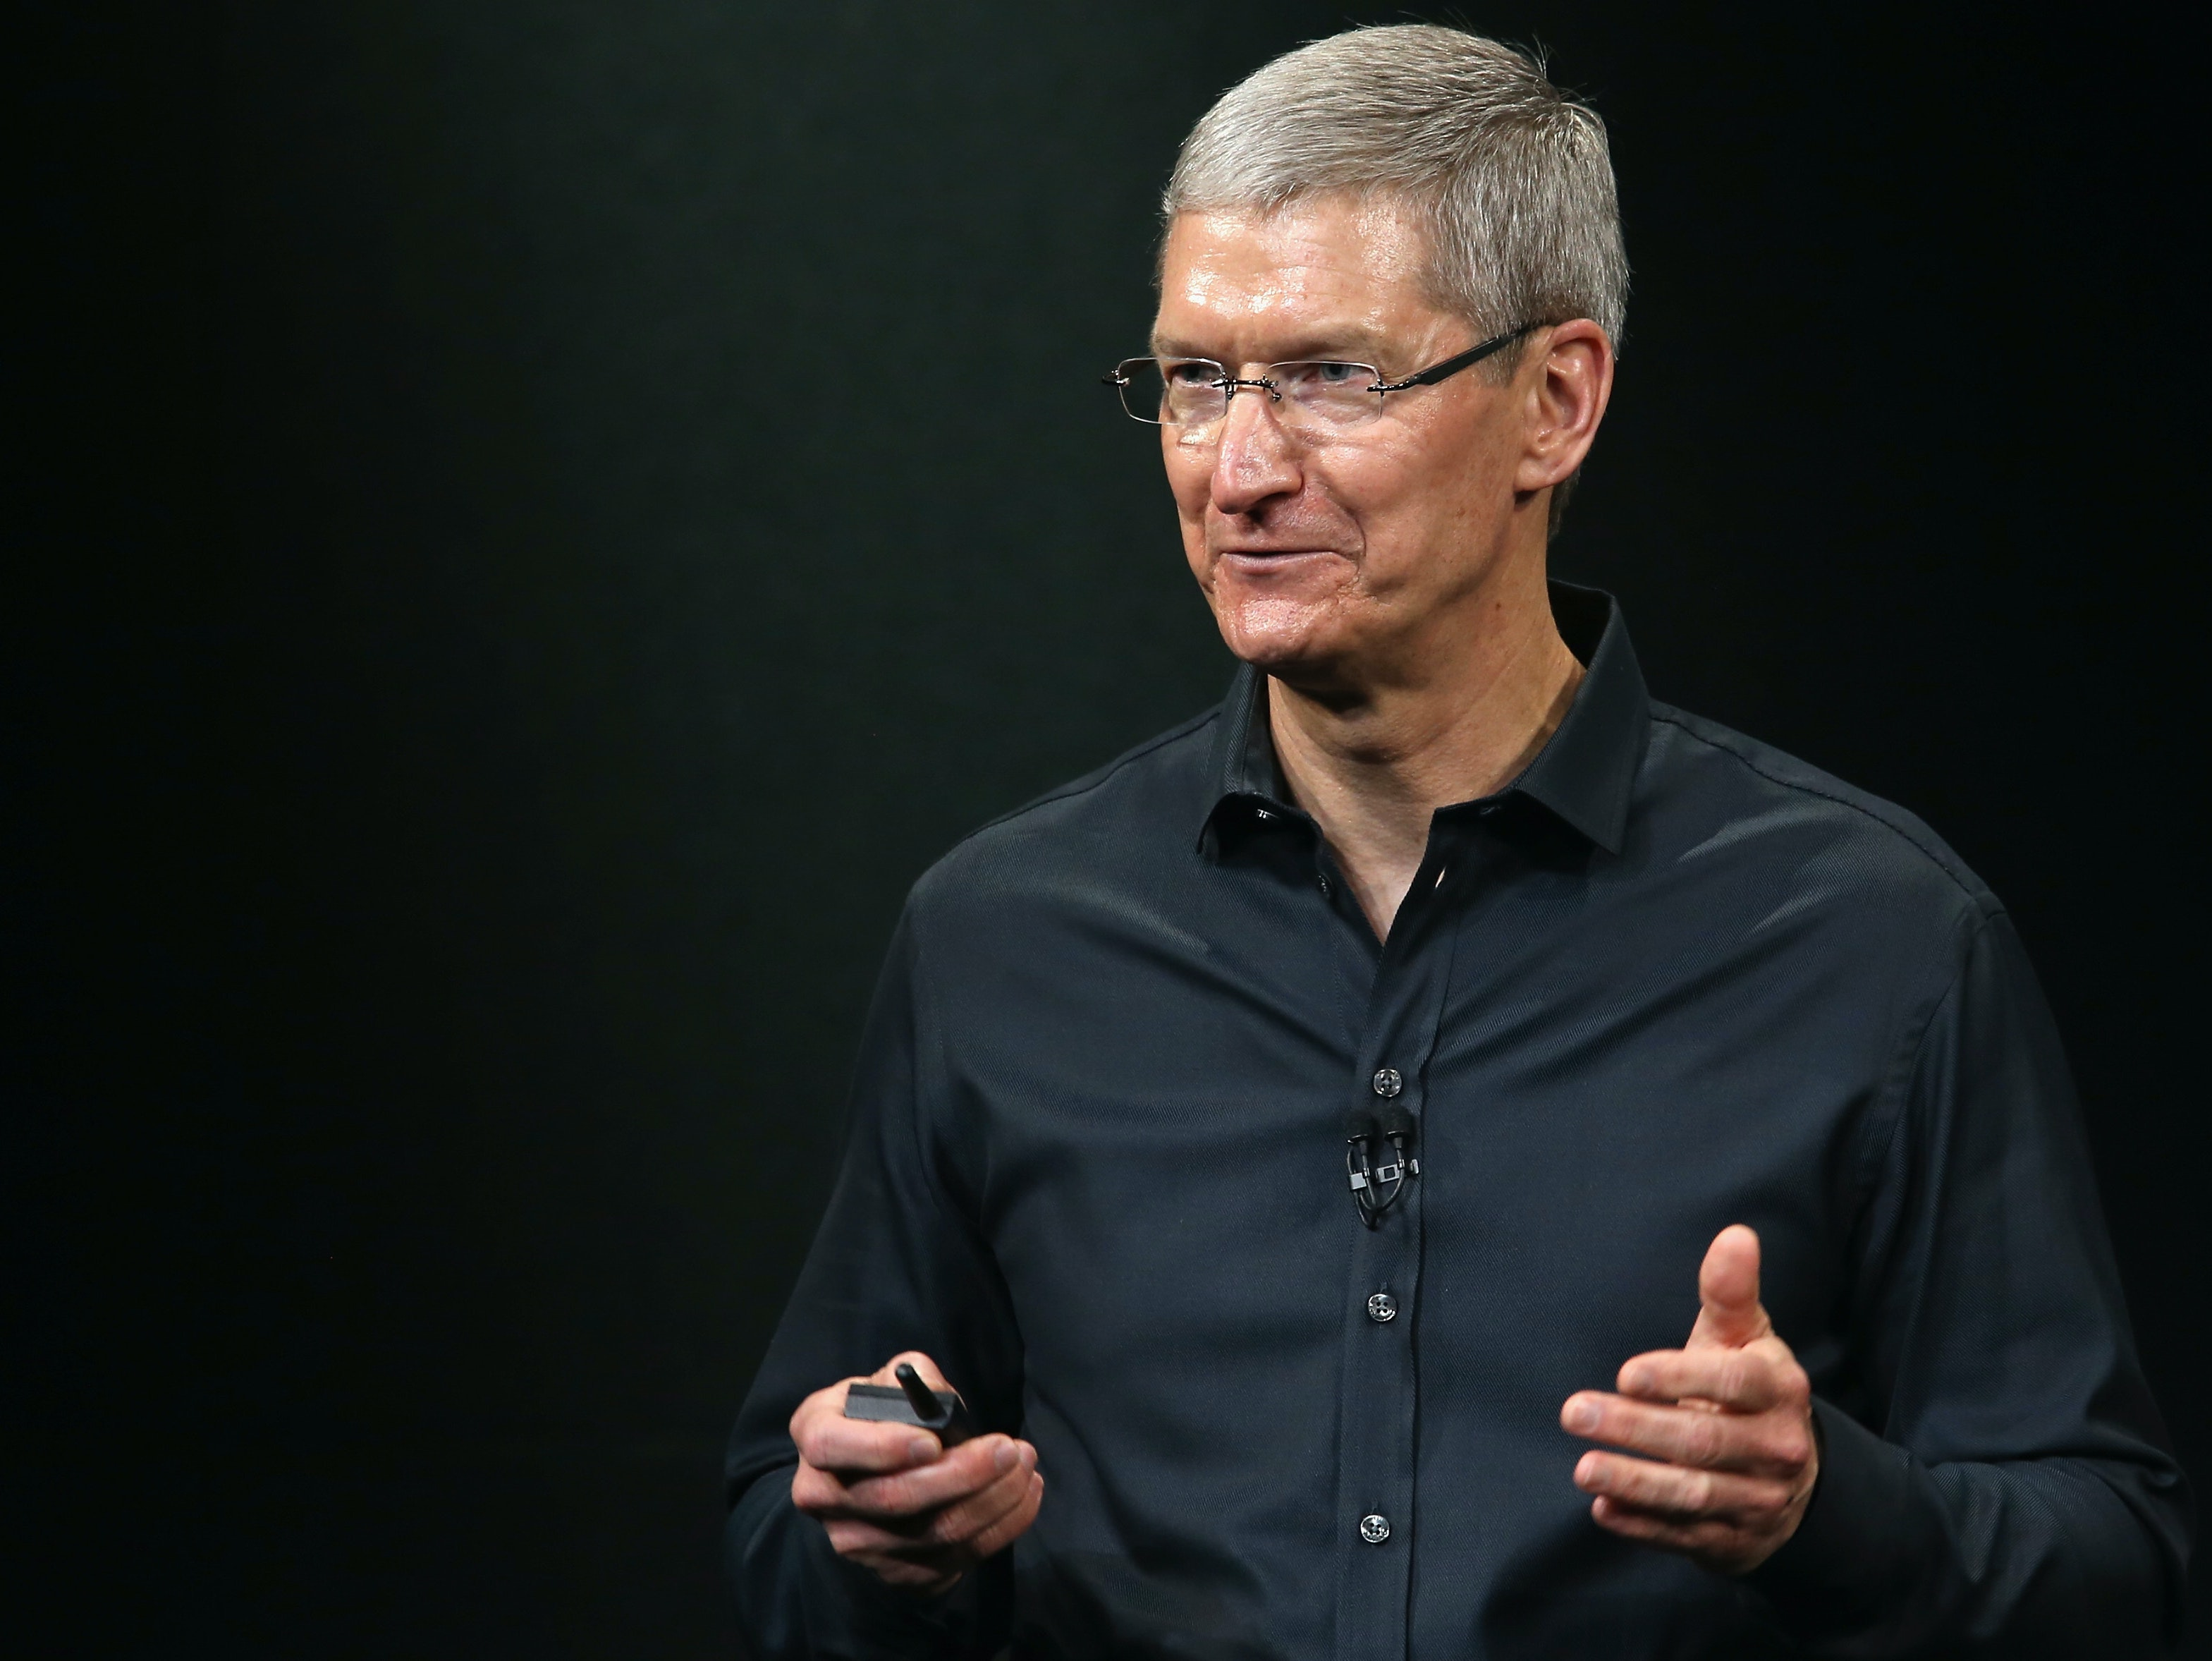 Apple CEO Tim Cook: Future iPhone A.I. Will Boost Battery Life